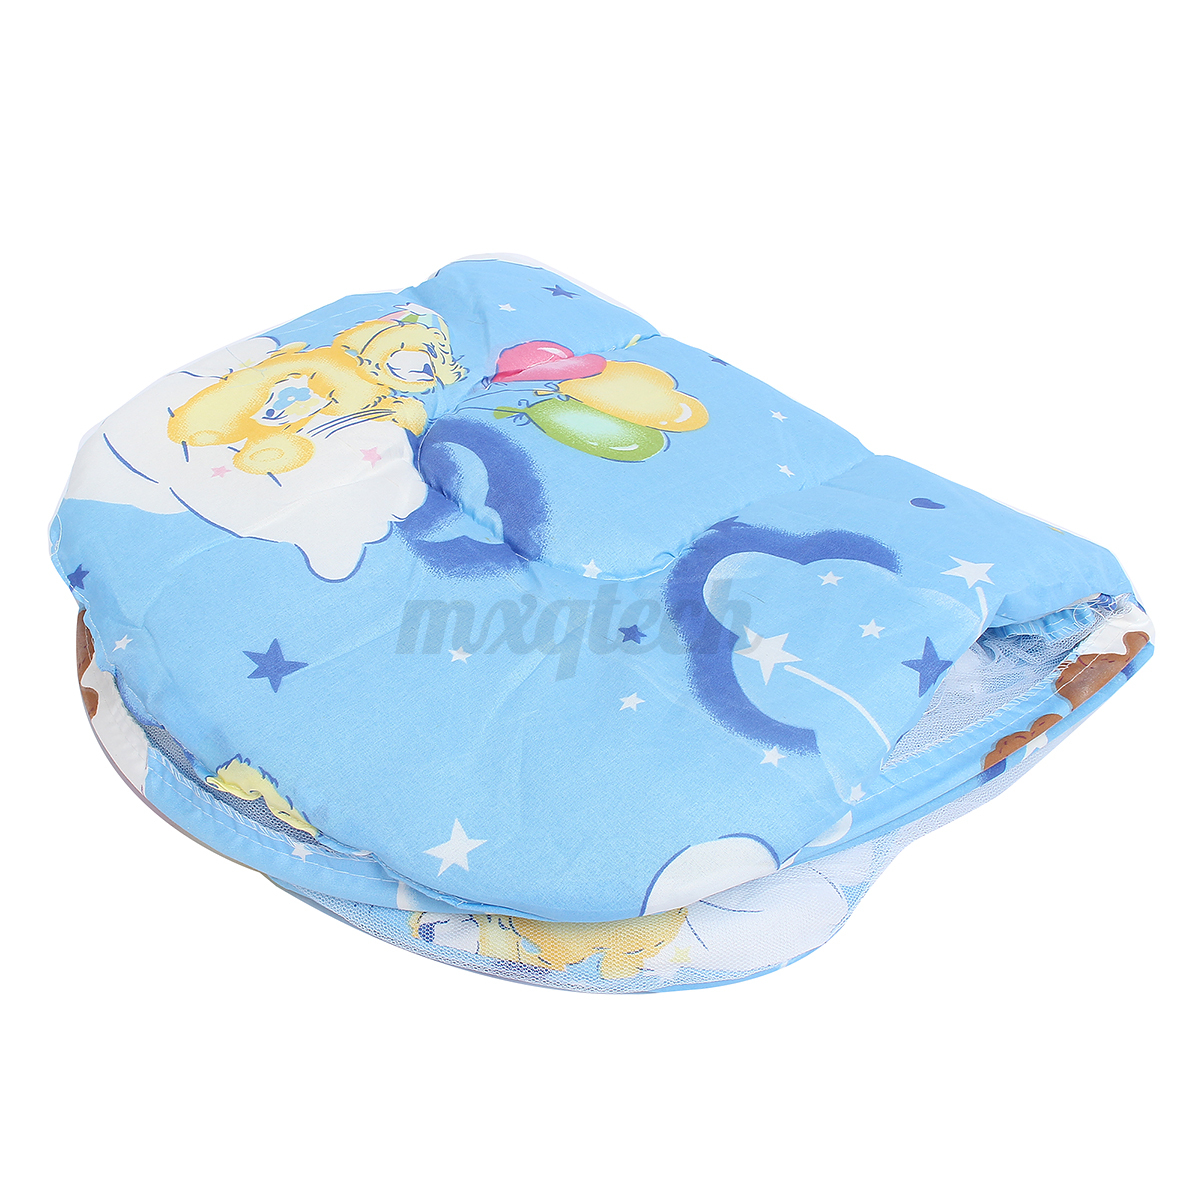 foldable baby infant mosquito nets tent mattress bed crib netting canopy pillow